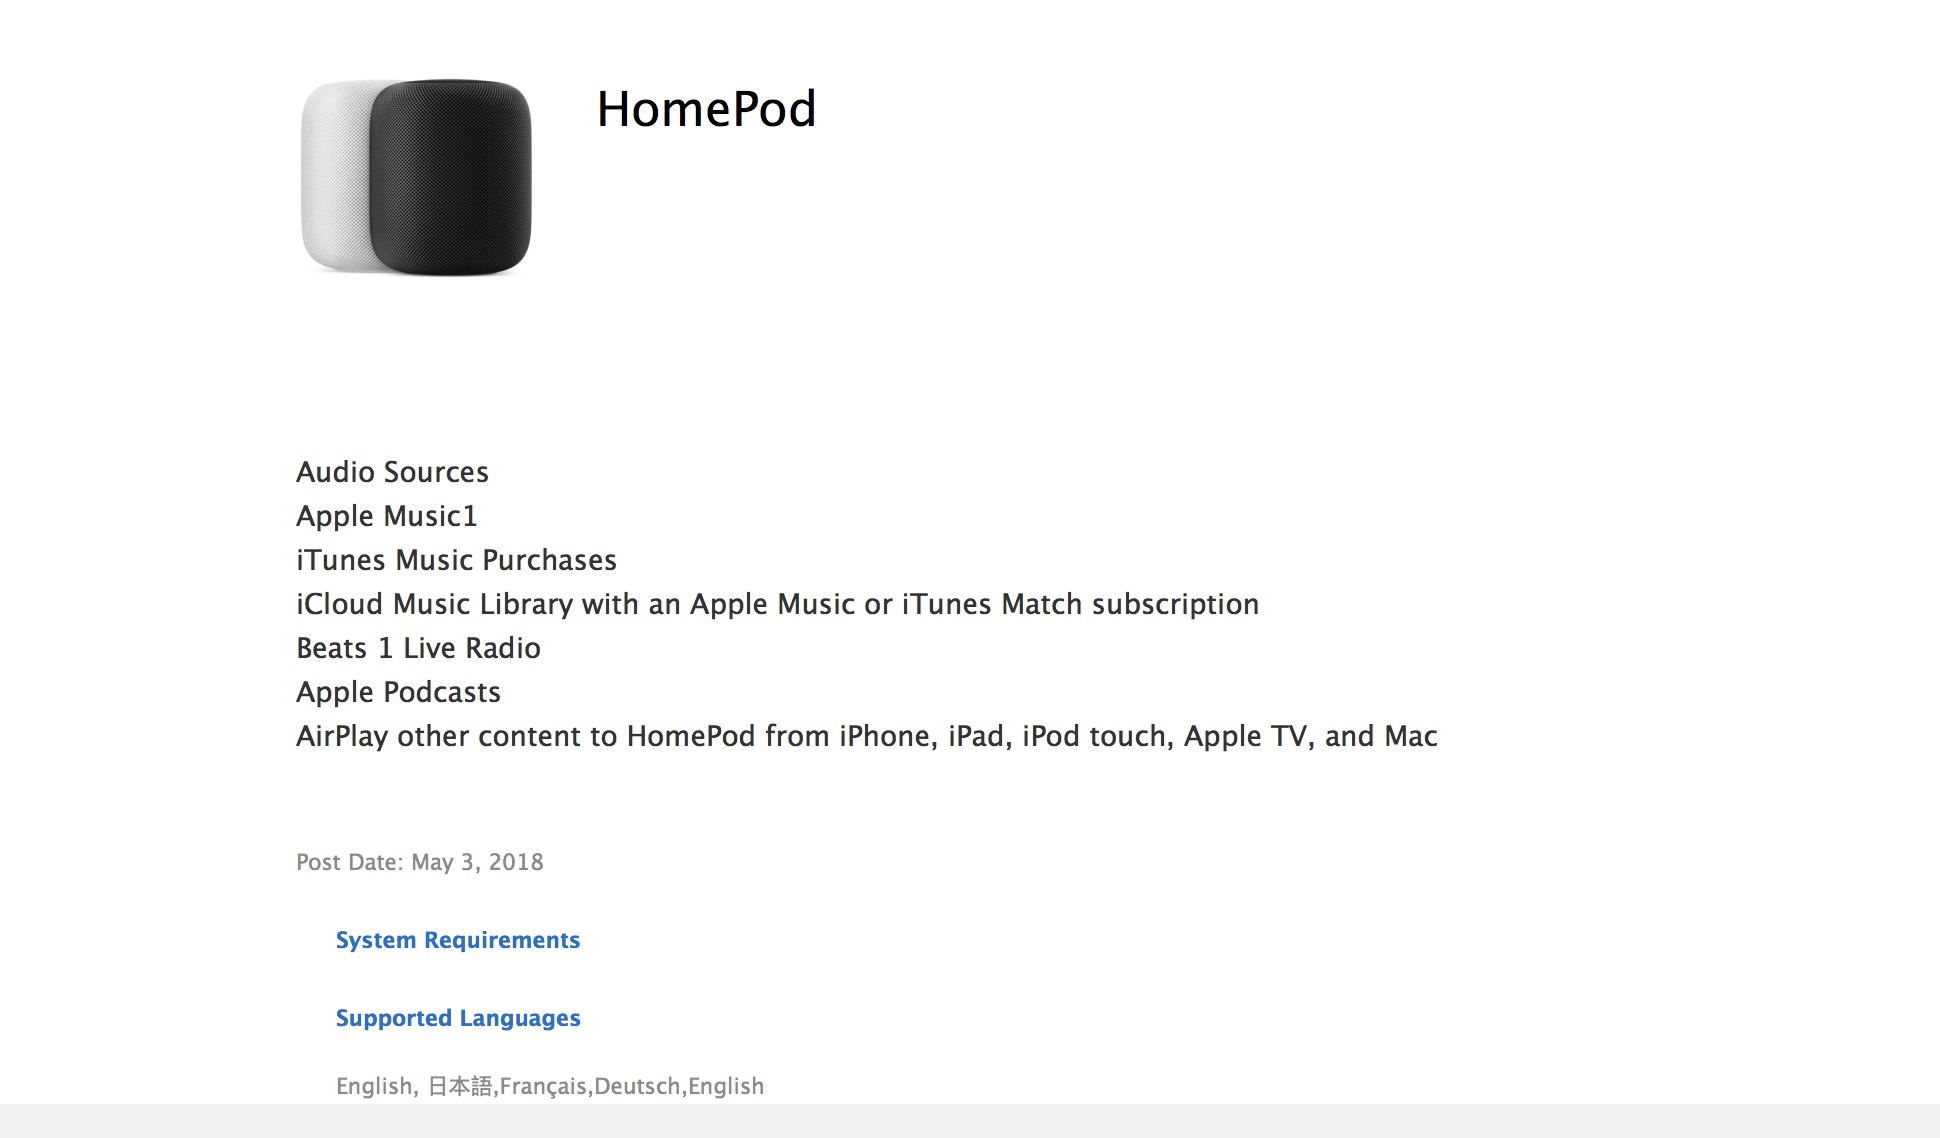 Apple support document fine print suggests HomePod could debut soon